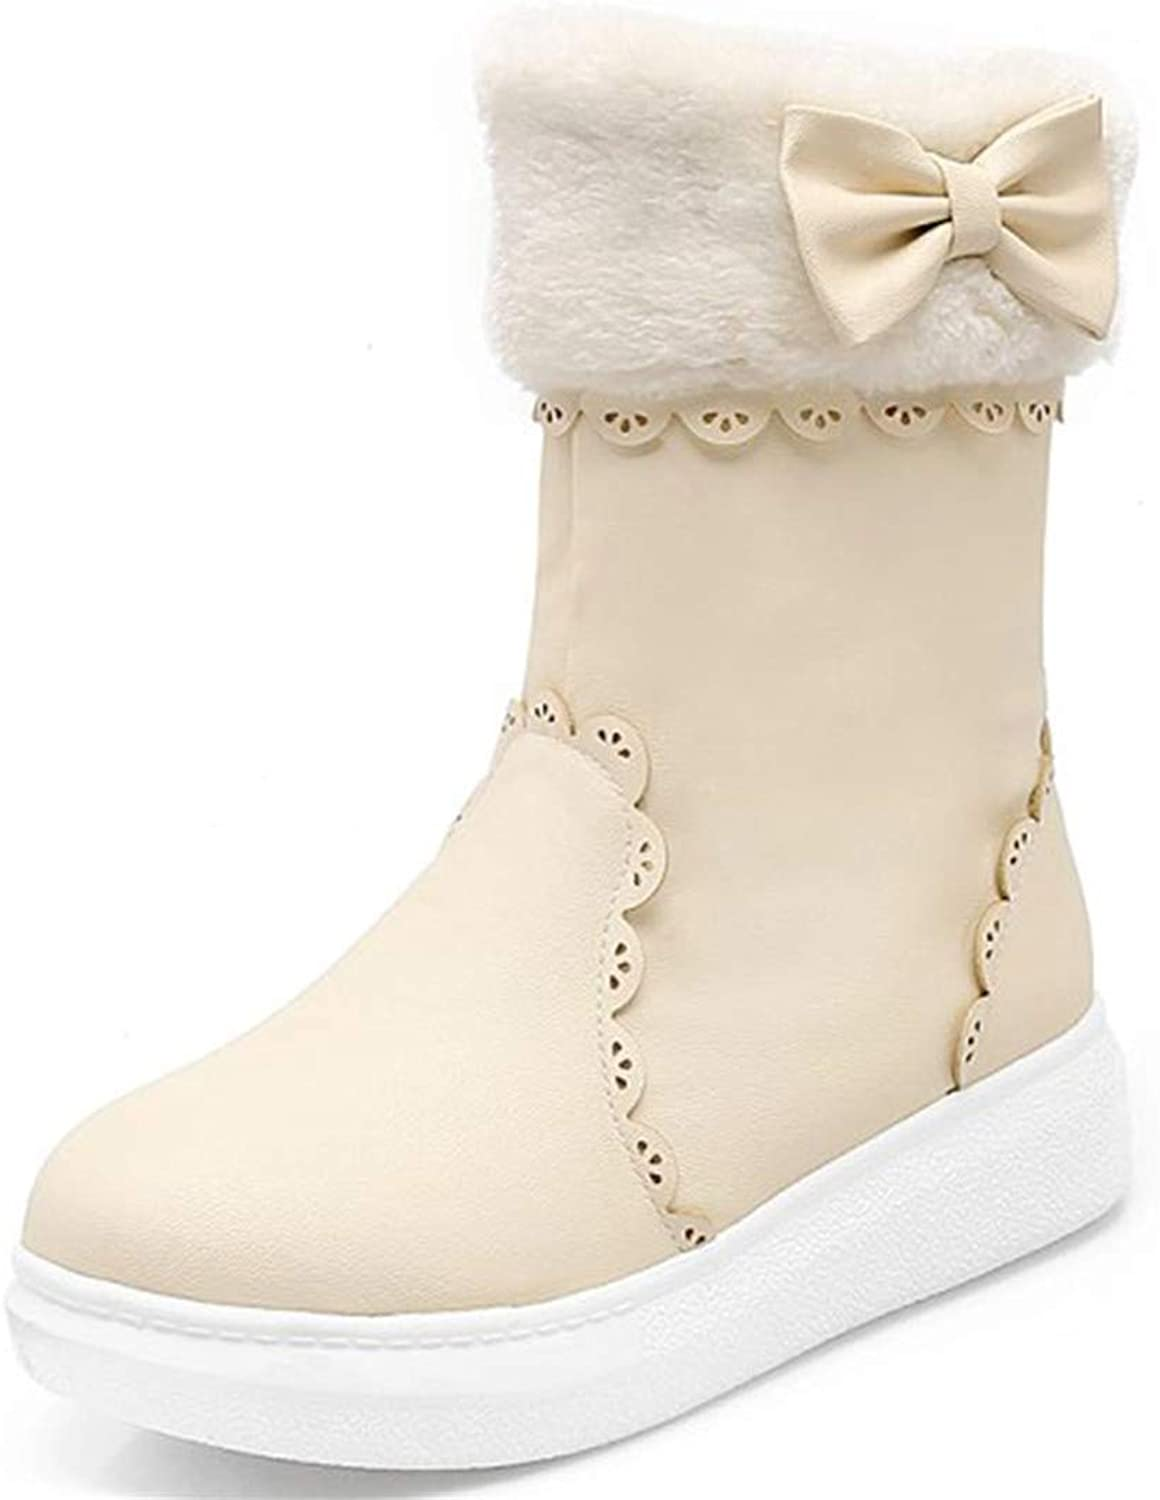 R-Anketsy Warm Plush Winter Boots Woman shoes Platform Boots Female shoes Snow Boots